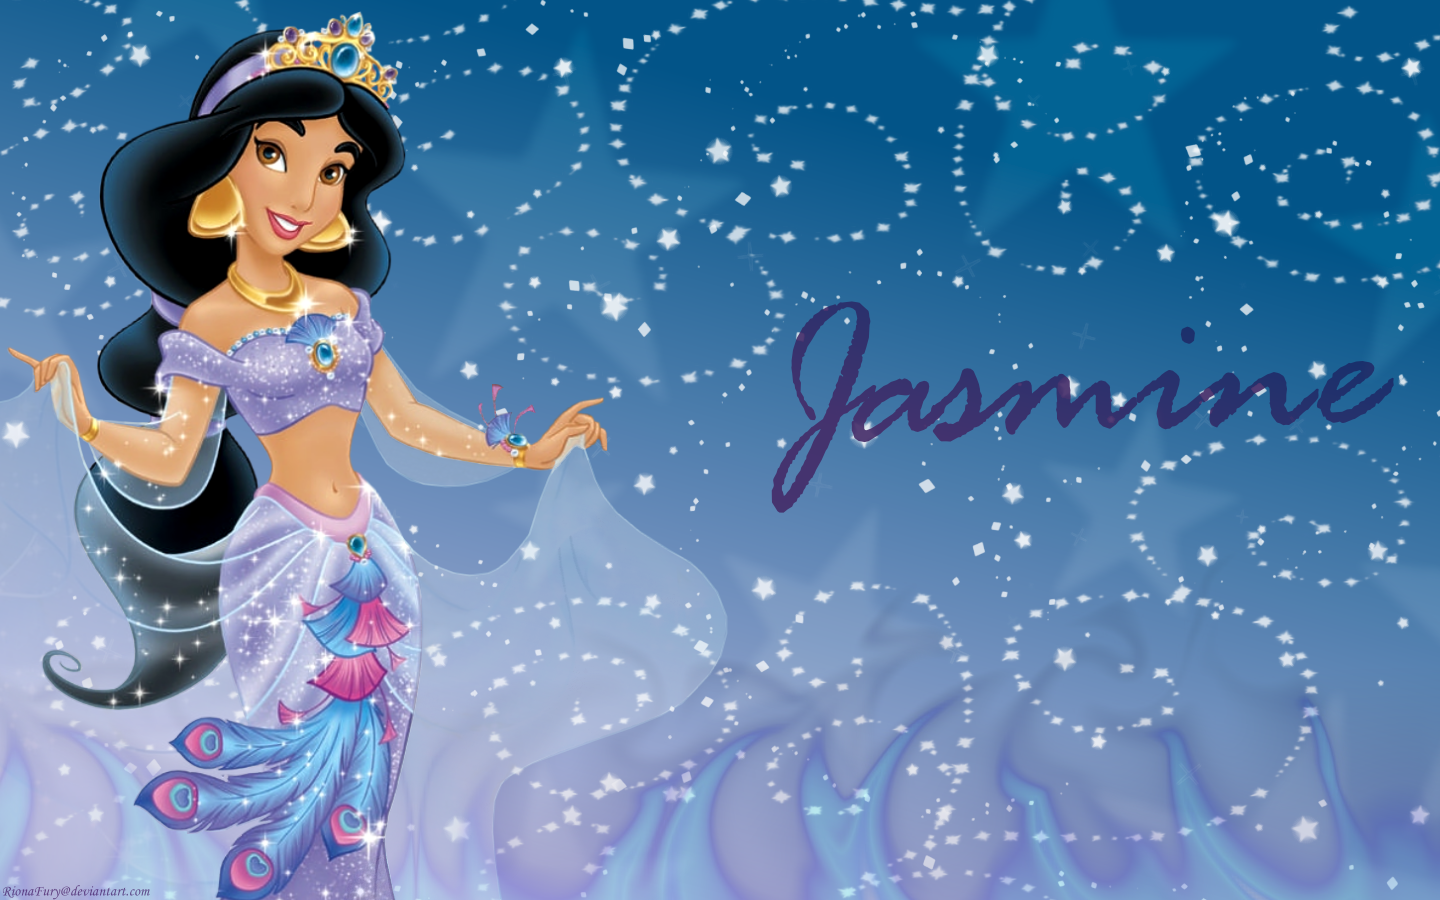 Hair color not hair style poll results disney princess fanpop - Hd Wallpaper And Background Photos Of Princess Jasmine For Fans Of Aladdin Images